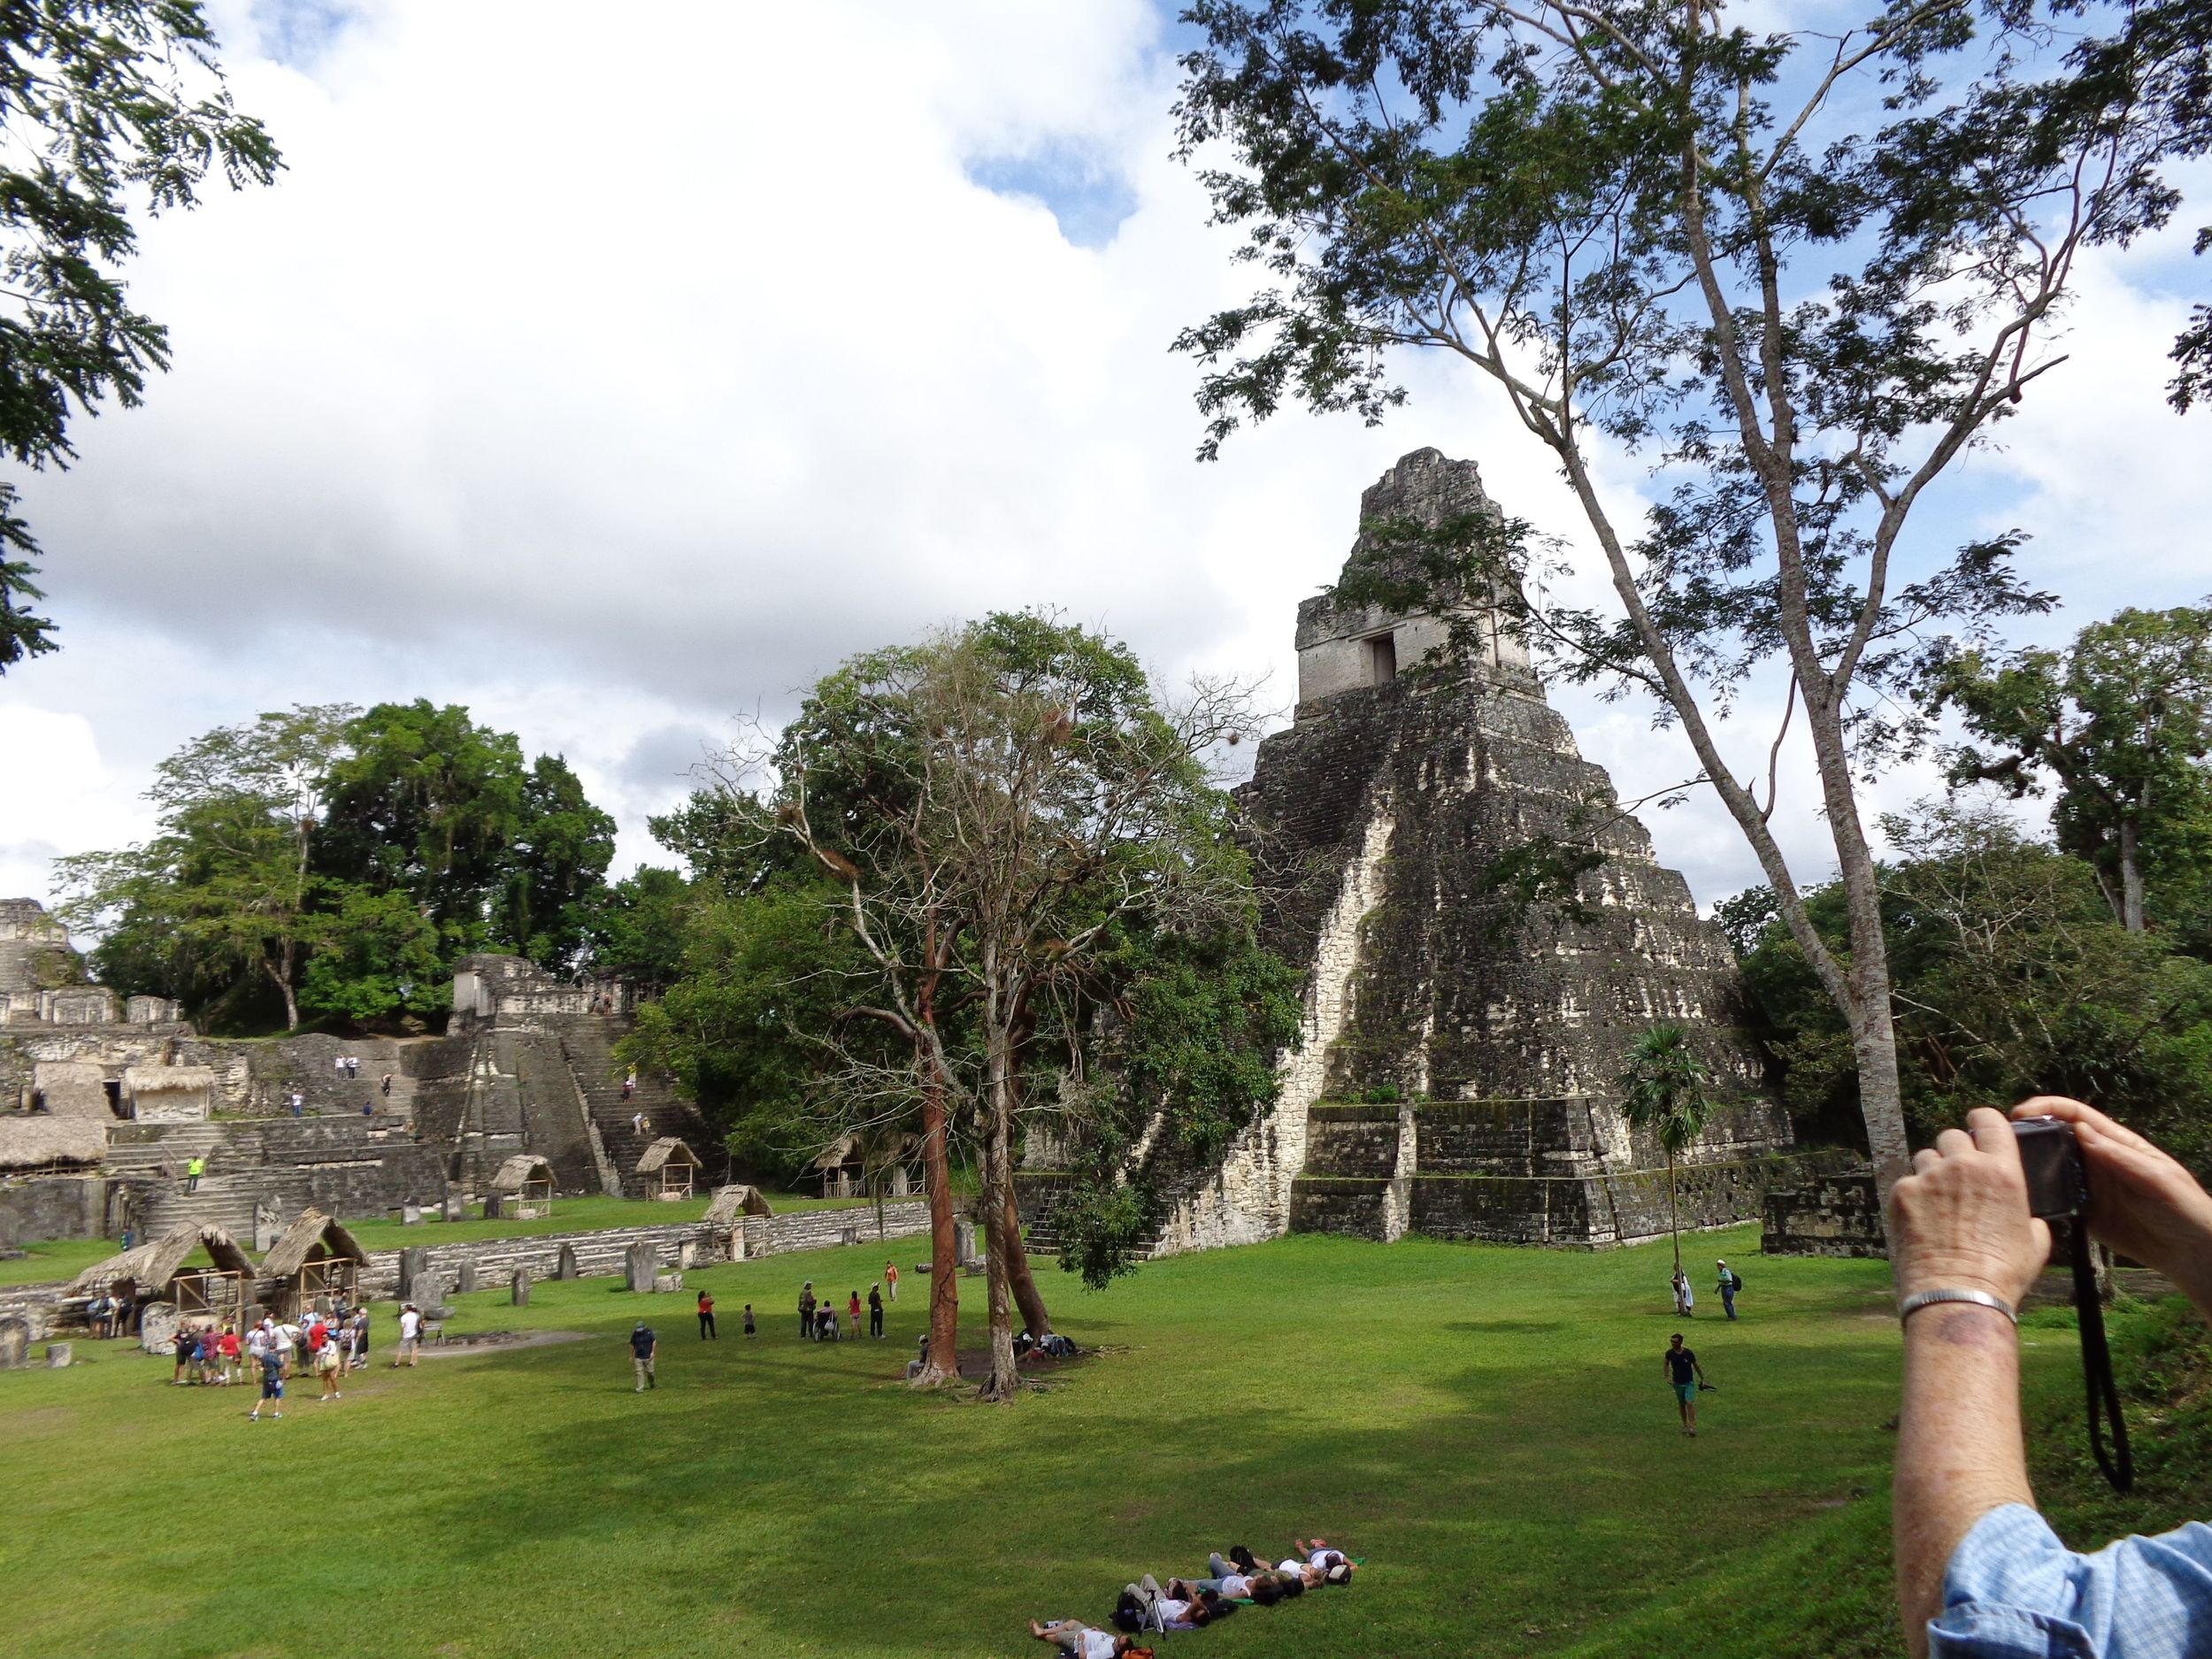 The plaza at Tikal National Park, Belize.